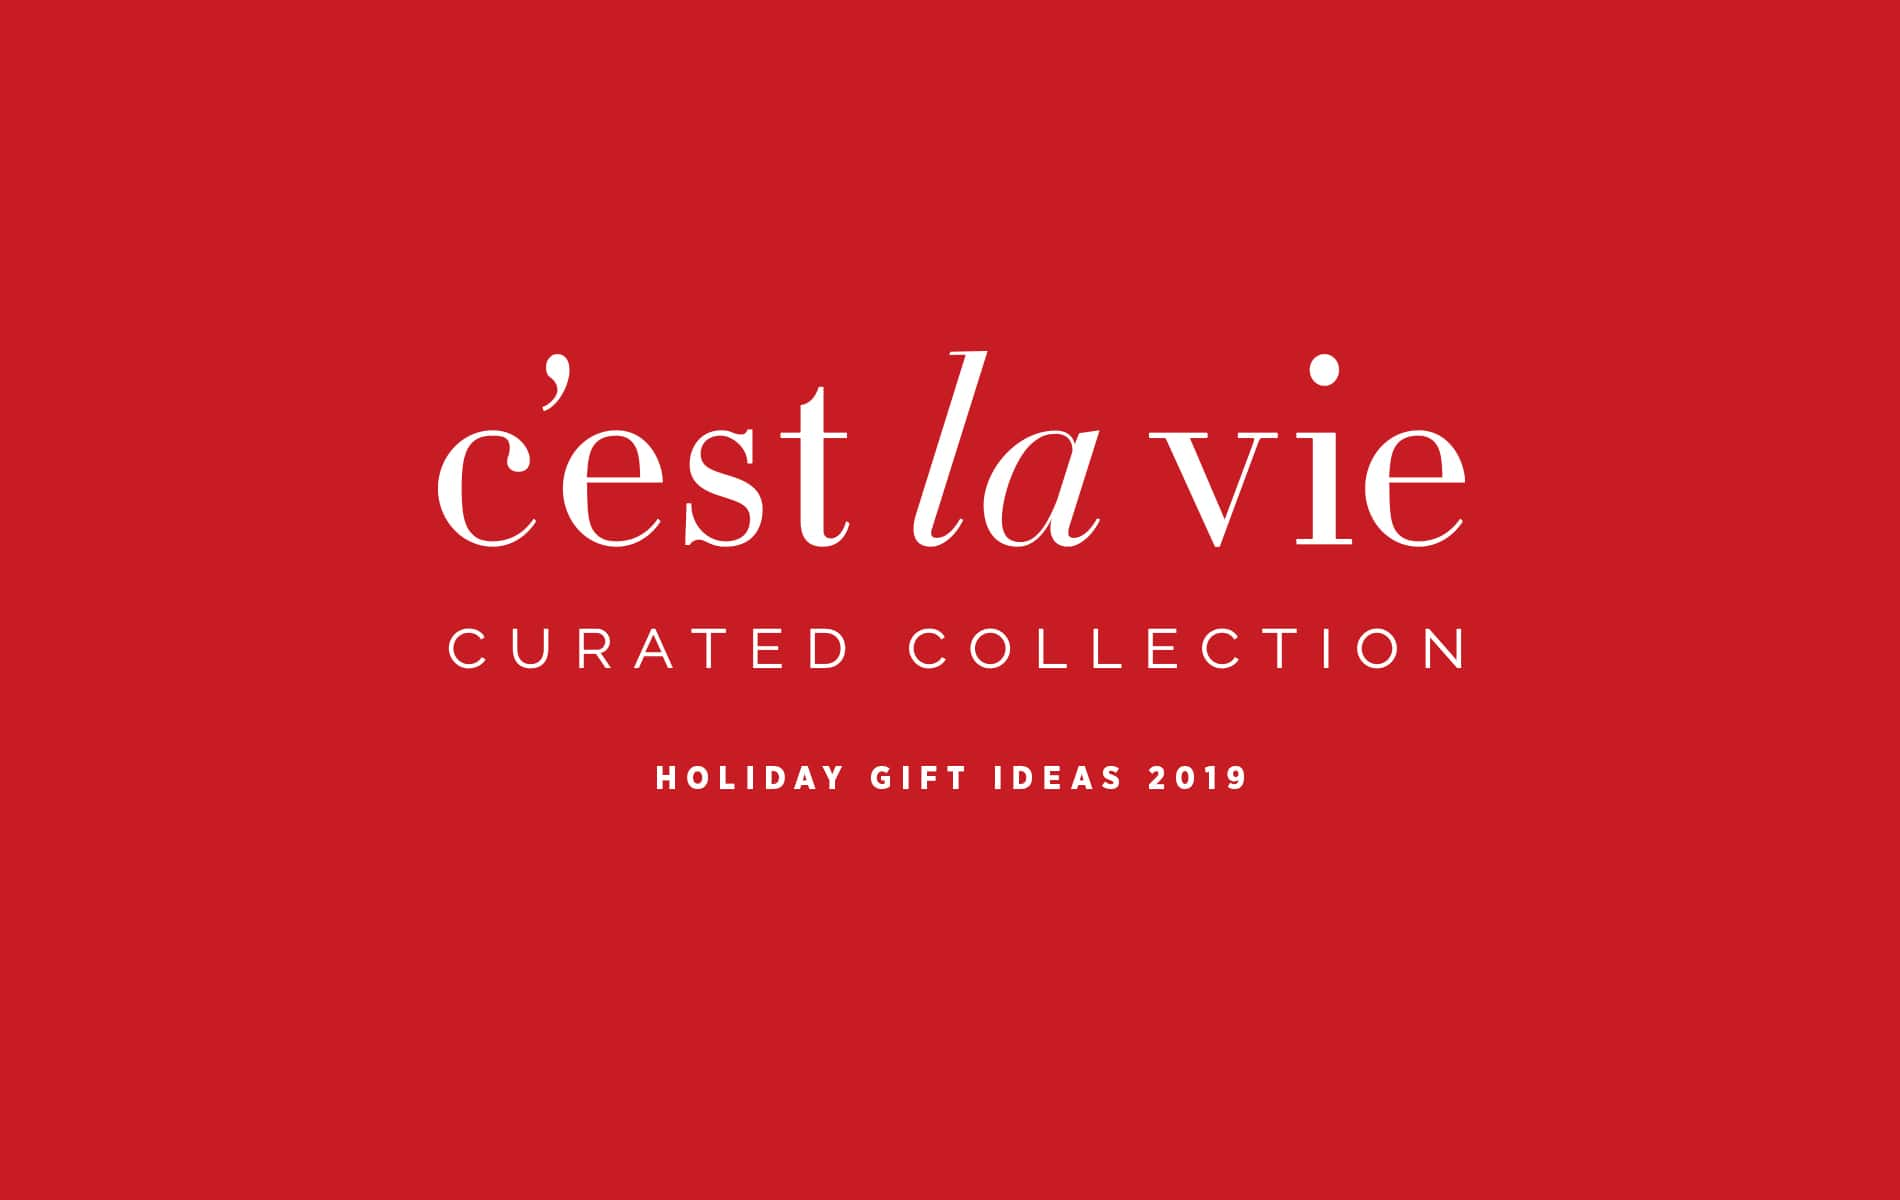 VIE Magazine, C'est la VIE Curated Collection Holiday Gift Guide 2019